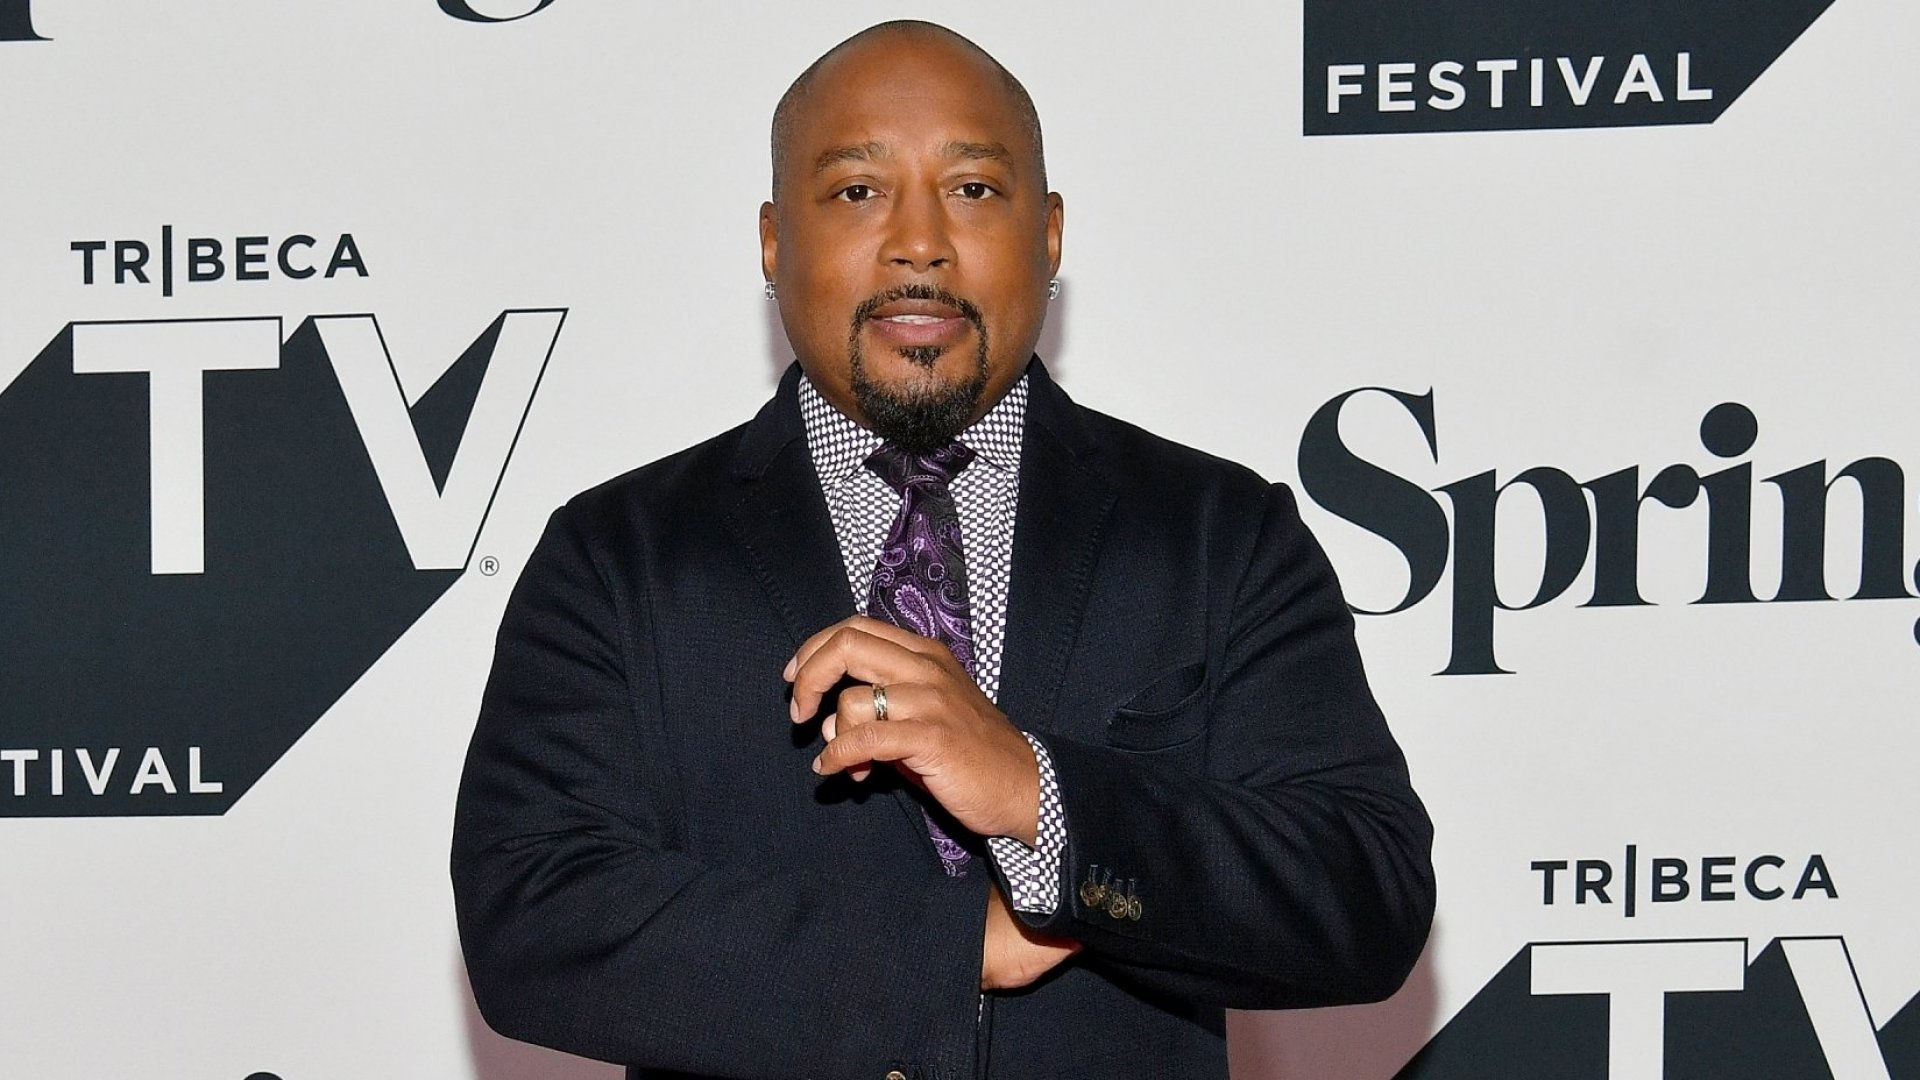 """Daymond John, Claude Silver, and 70 Influencers try to Break LinkedIn with """"Hey!"""" Video"""